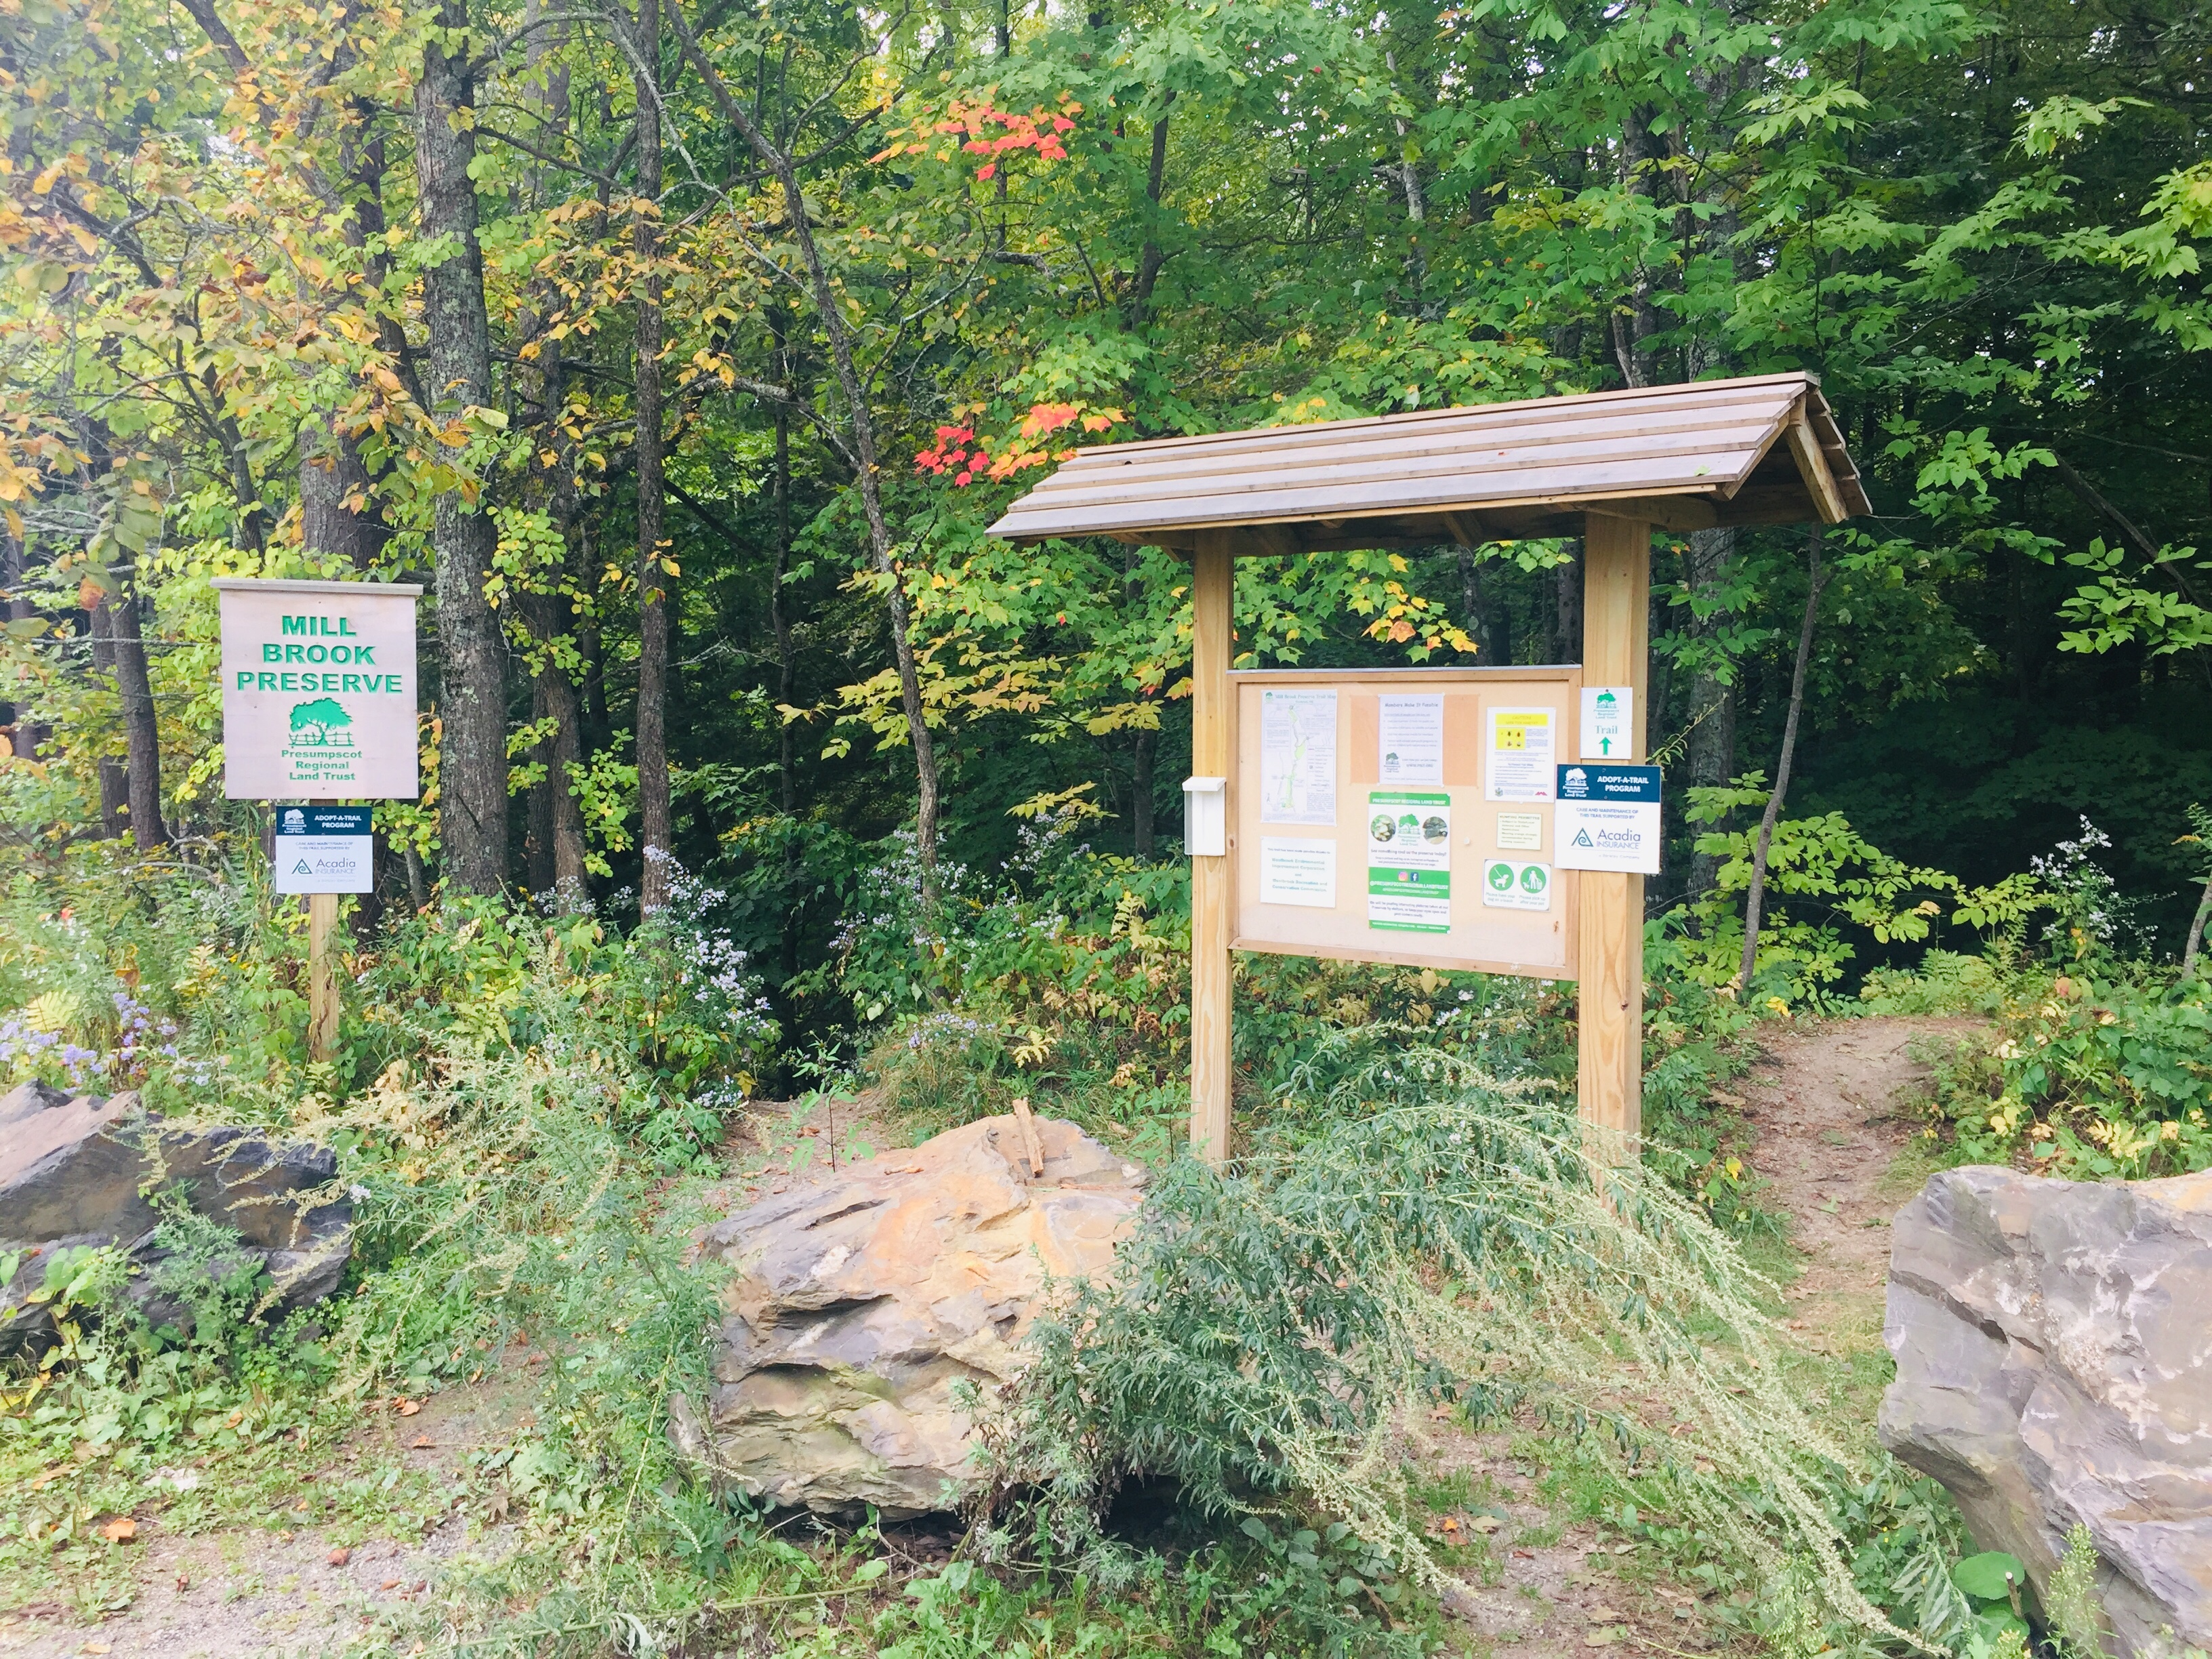 Information kiosk at Northern Trailhead, Mill Brook Preserve, Westbrook, ME